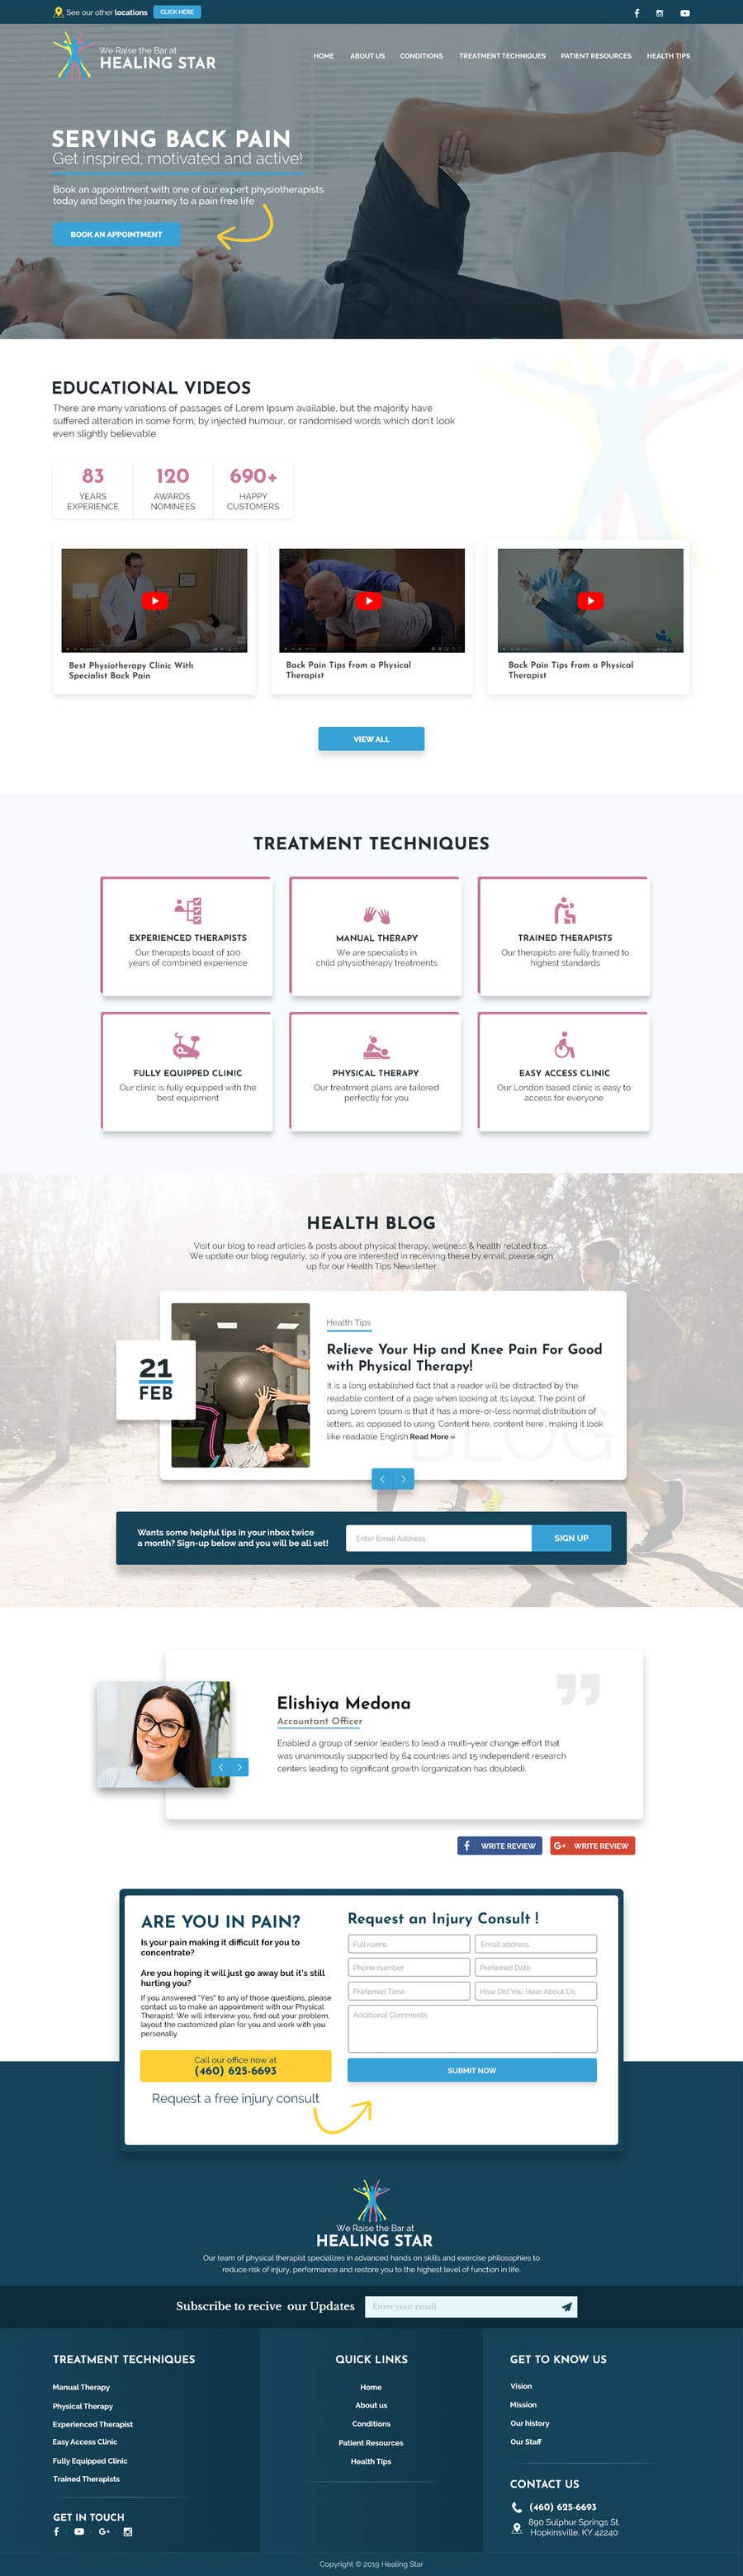 Penyertaan Peraduan #19 untuk Need PSD for physical therapy website home page